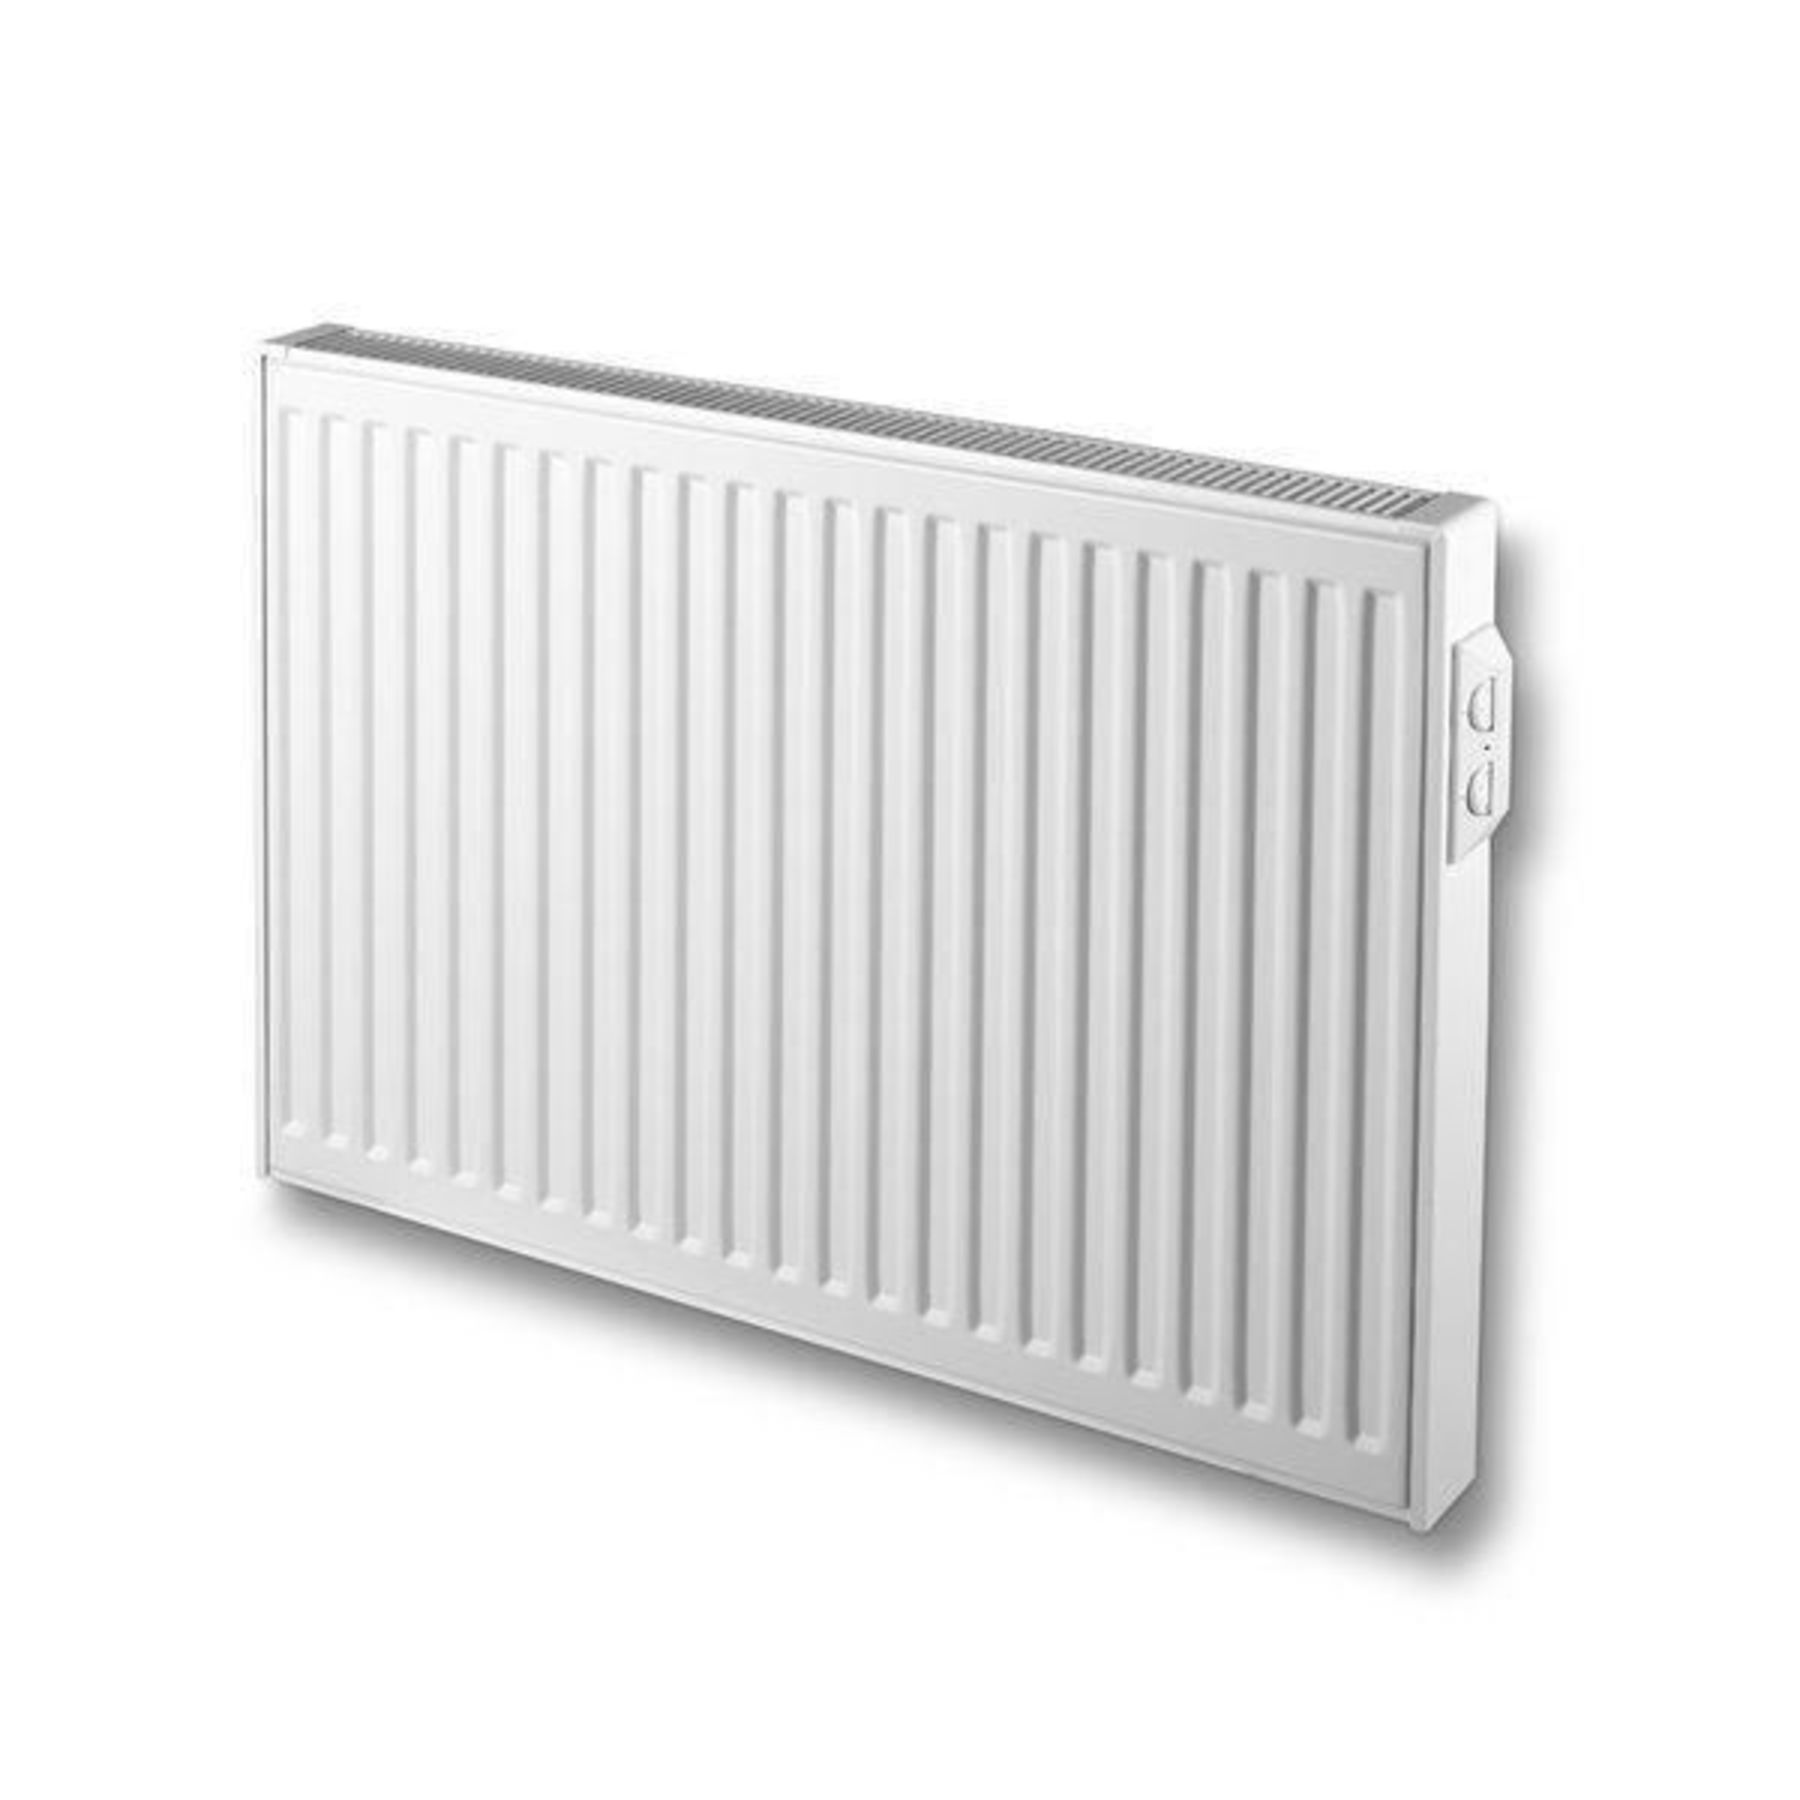 Vasco E panel radiator geribt elektrisch 800x600mm 1000 watt wit